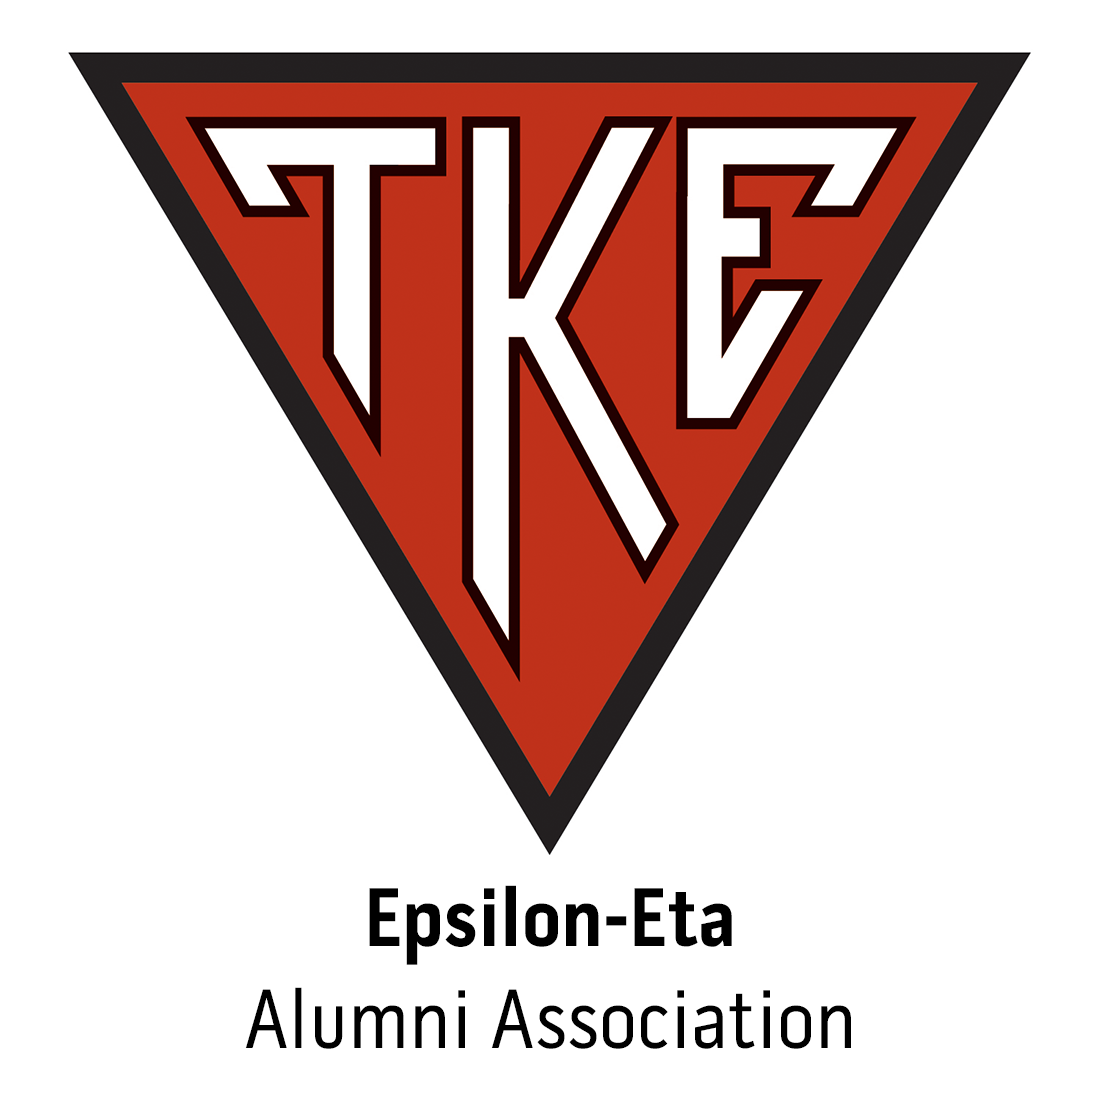 Epsilon-Eta Alumni Association at Southwestern Oklahoma State University